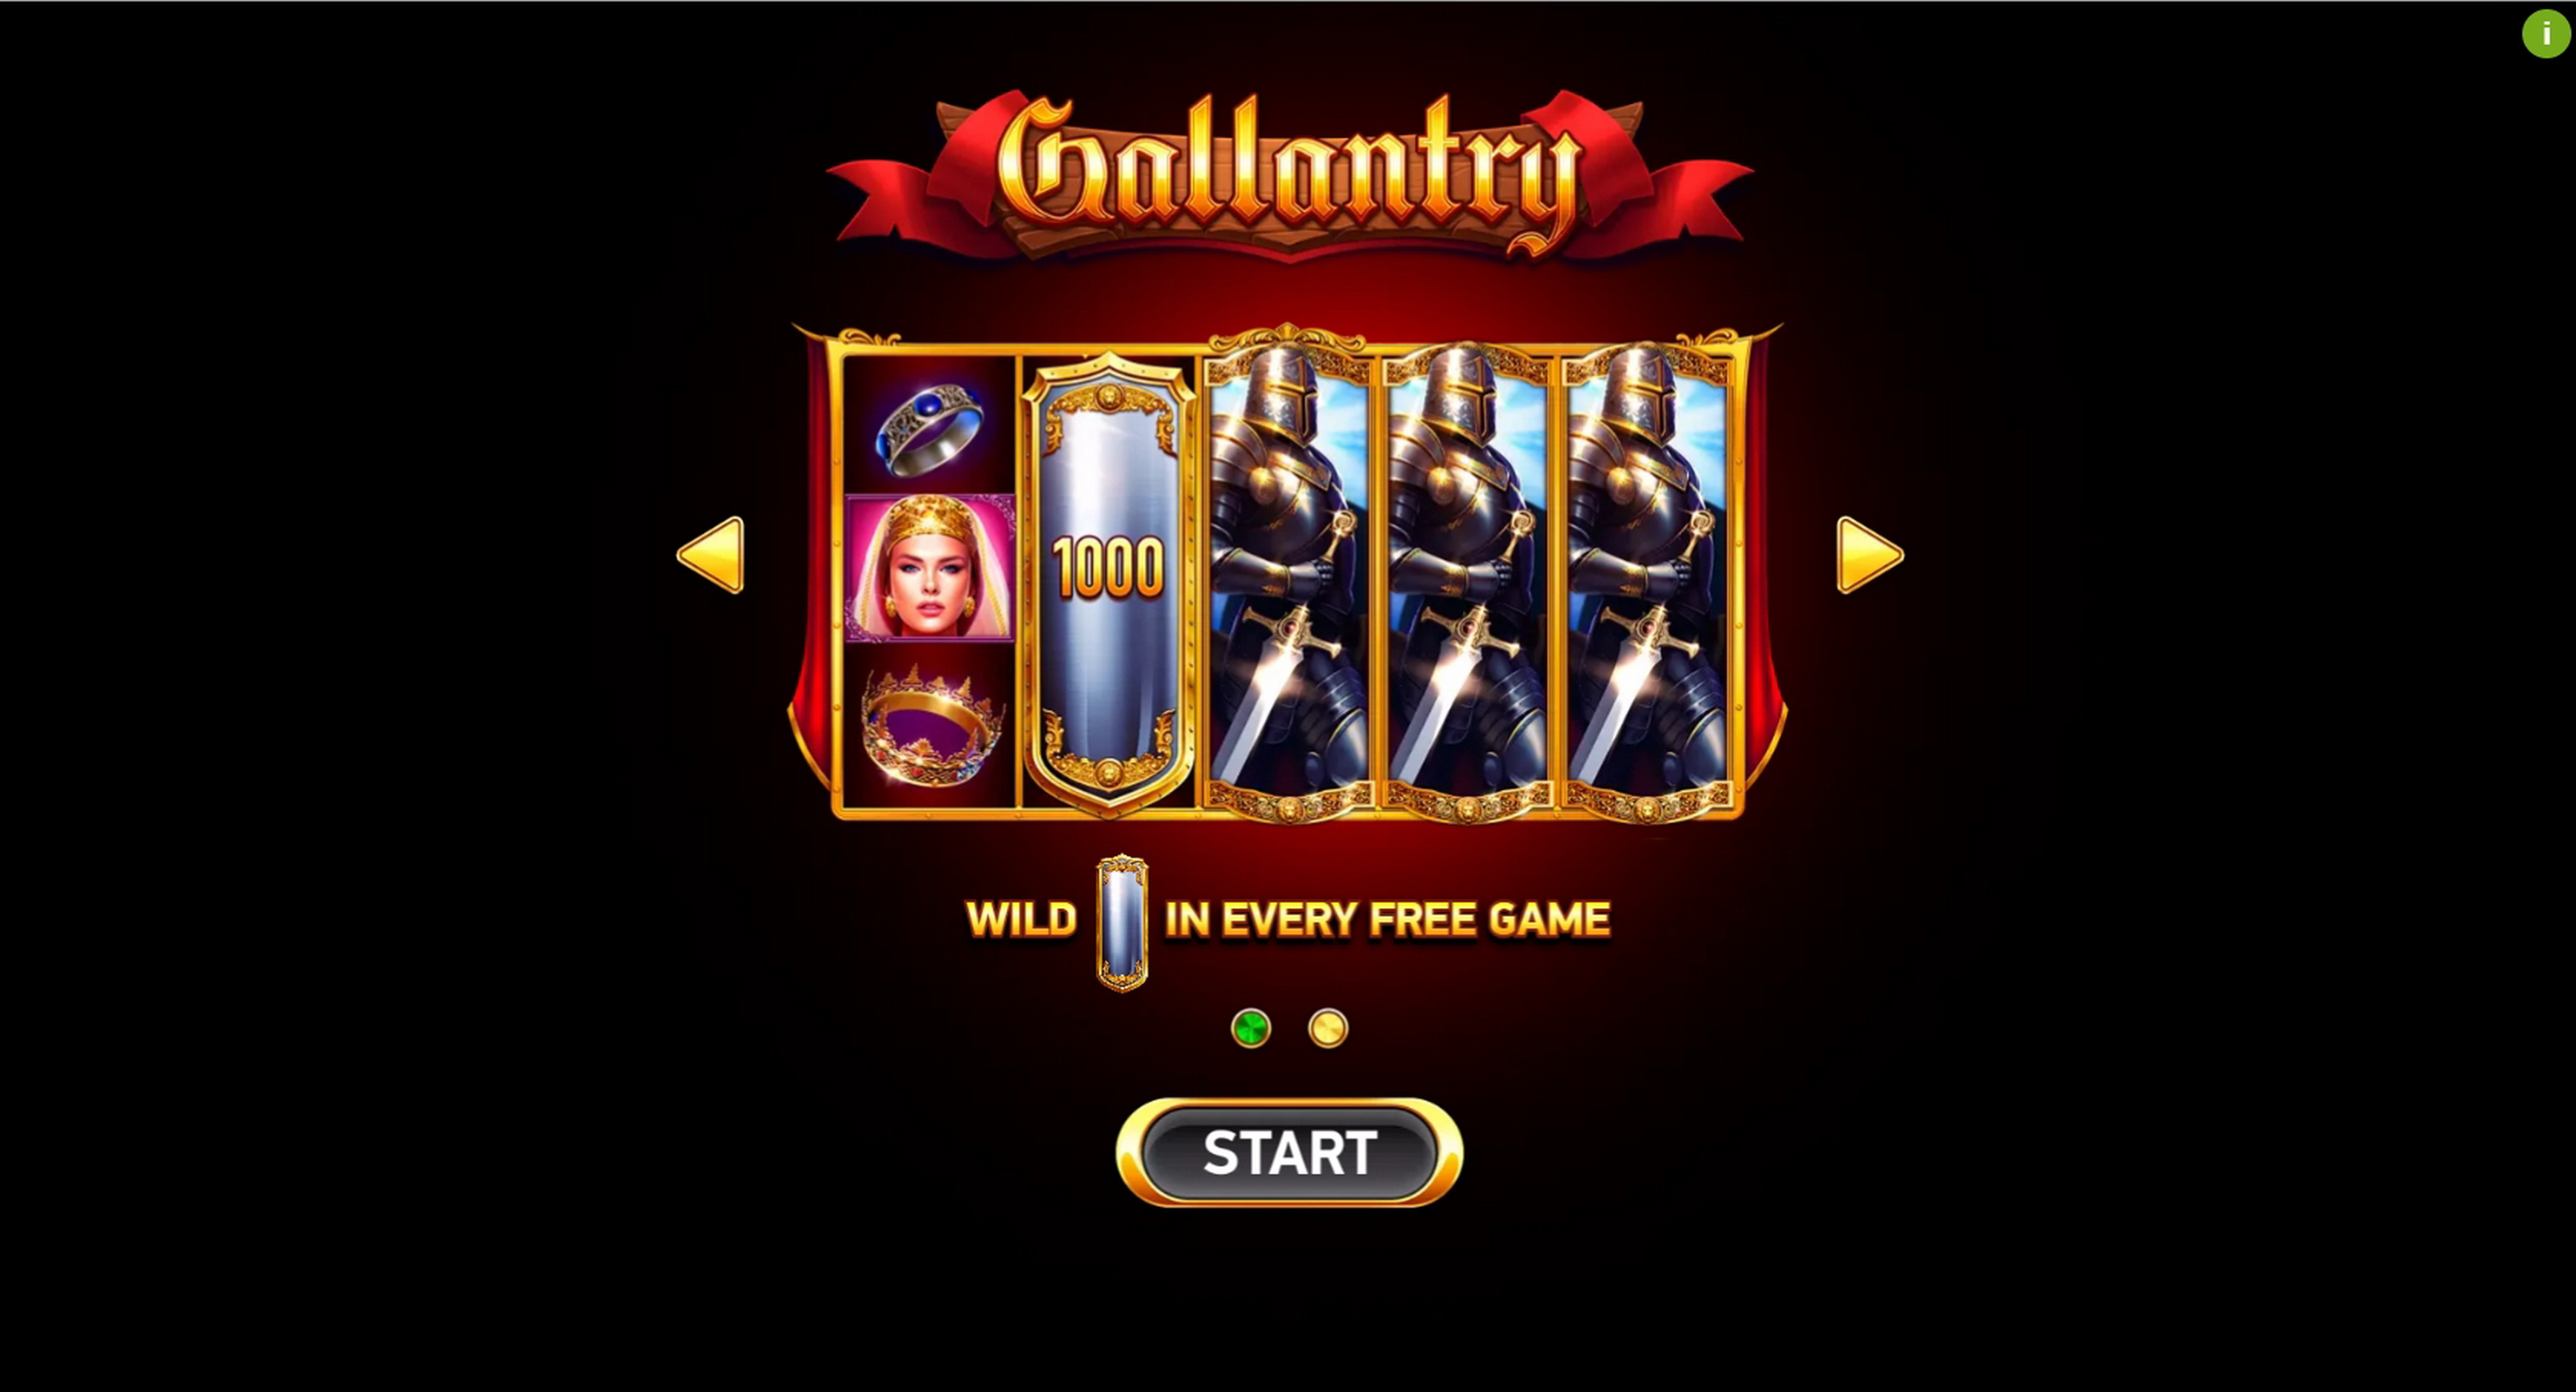 Play Gallantry Free Casino Slot Game by RubyPlay